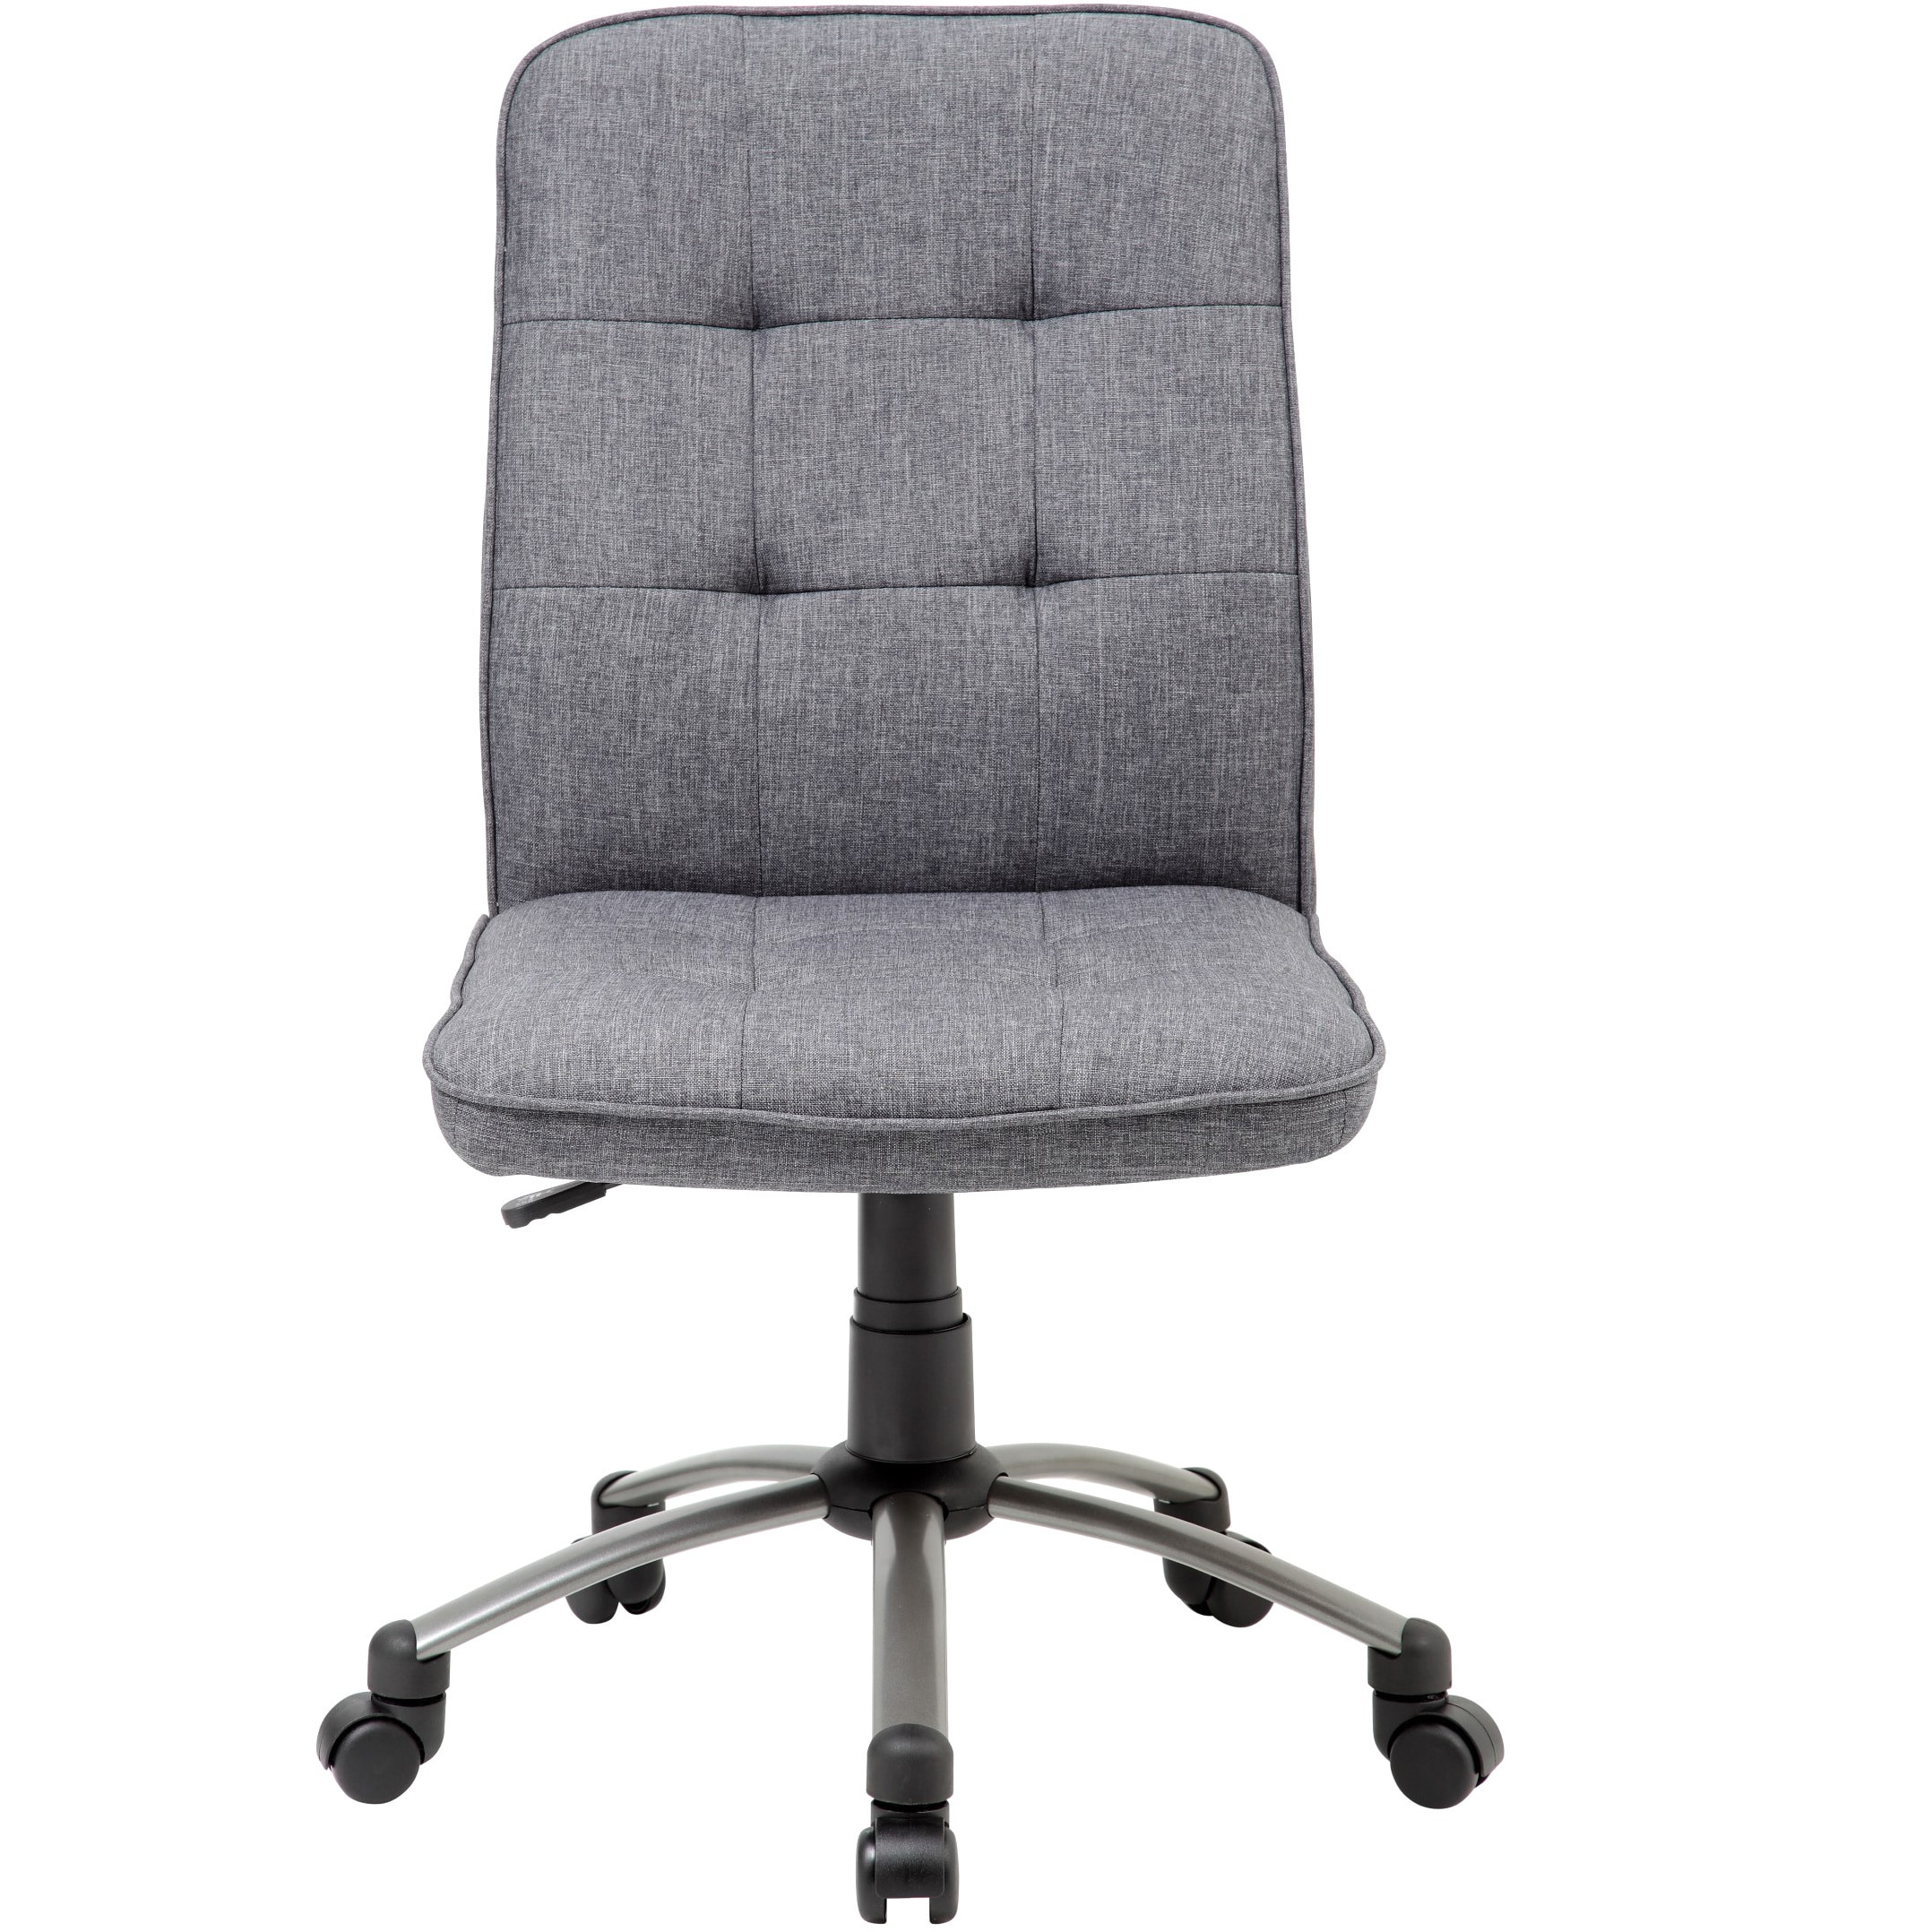 ergonomic office chairs. Shop Boss Fabric Modern Ergonomic Office Chair - Free Shipping Today Overstock.com 11693392 Chairs